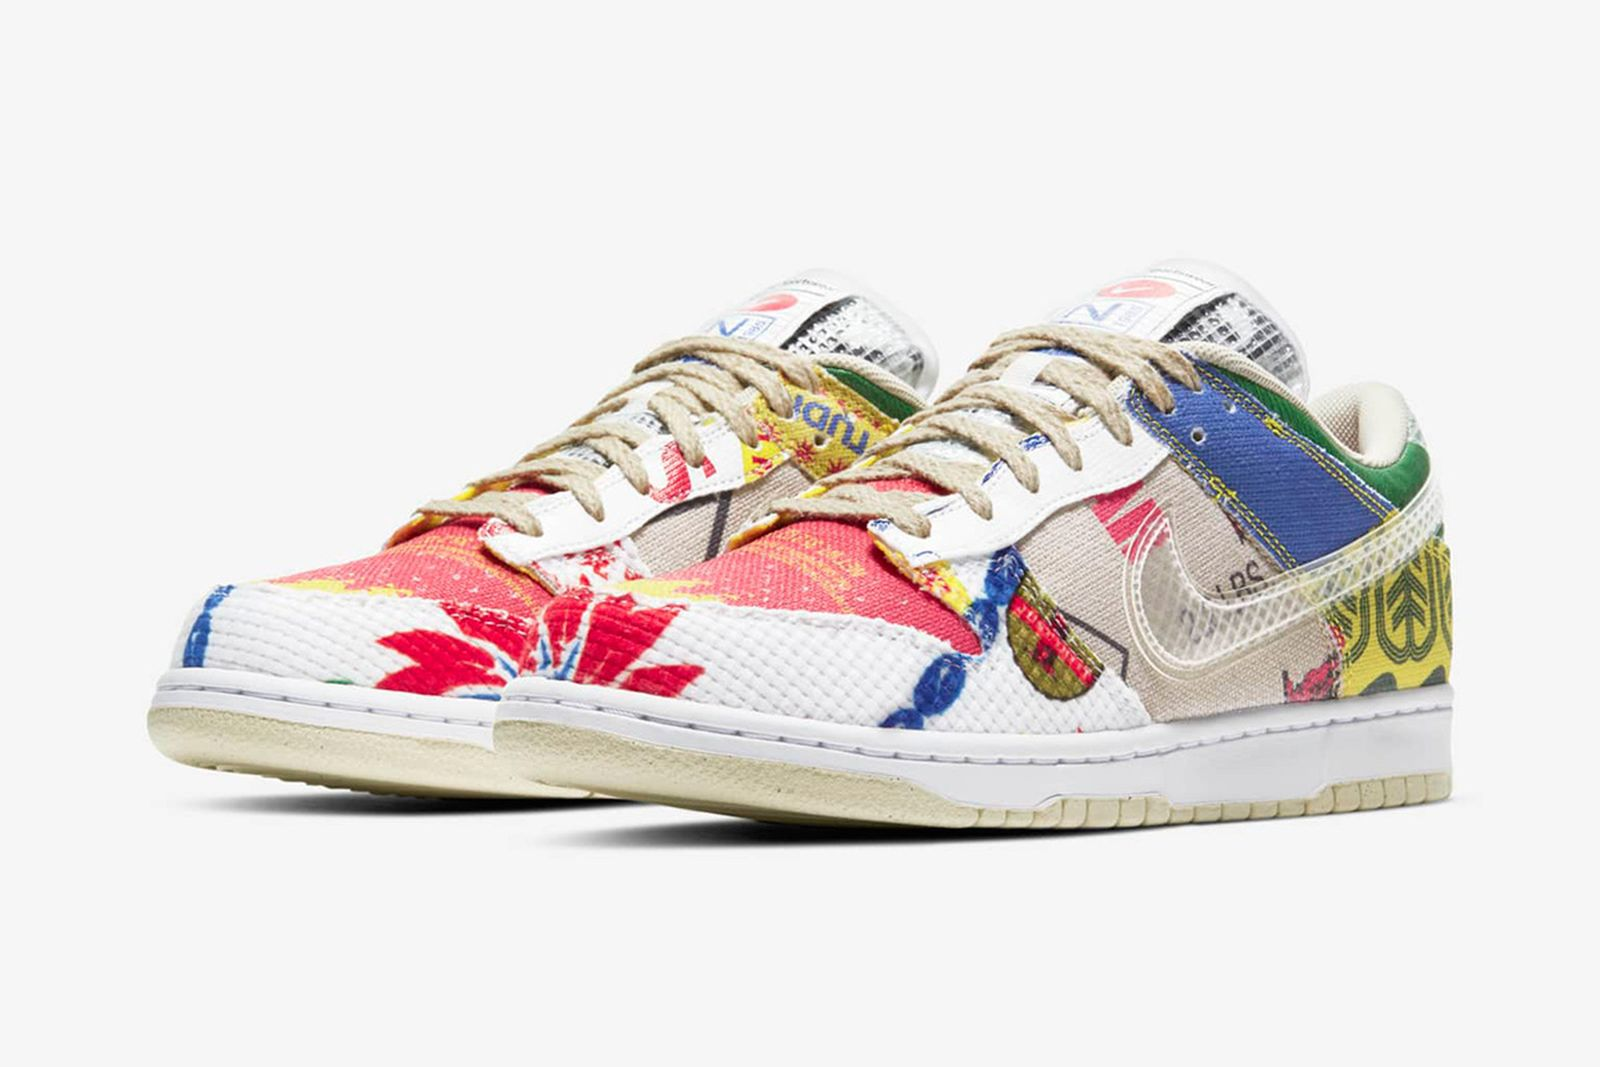 nike-dunk-low-city-market-release-date-price-05